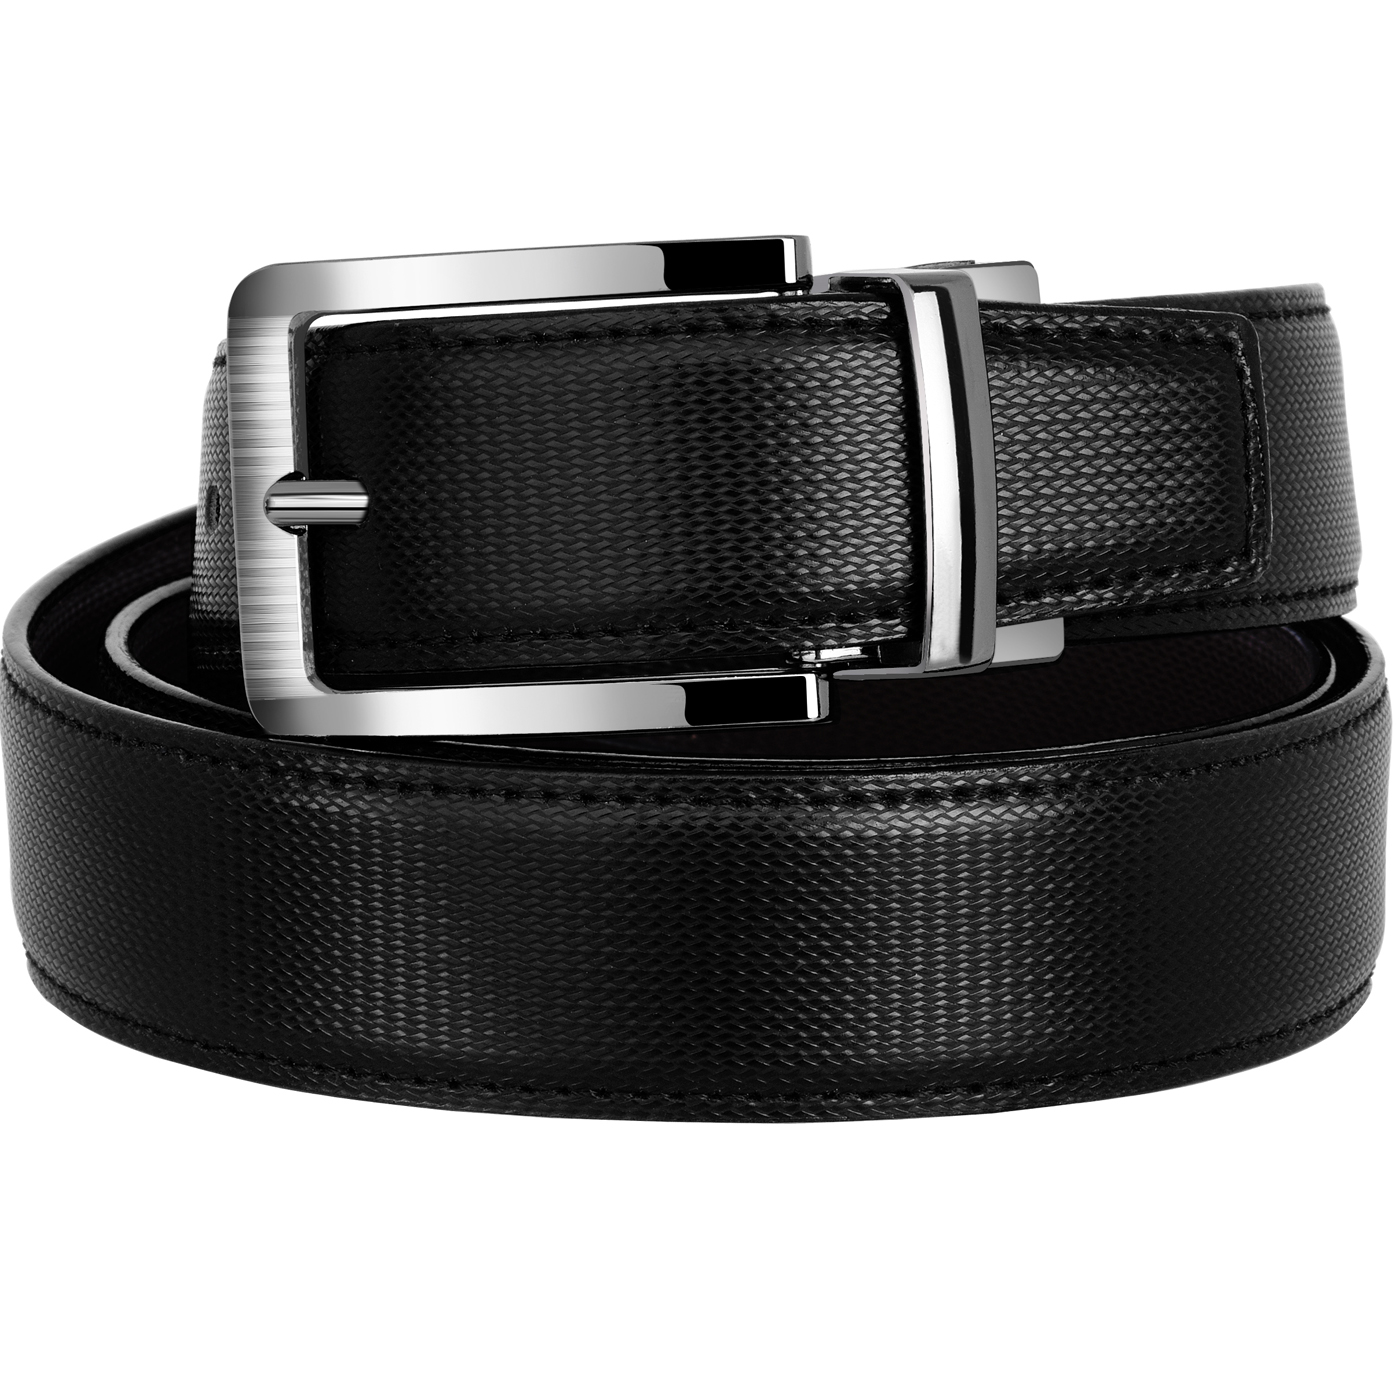 Nitrogen Boys Casual, Formal, Evening, Party Black Artificial Reversible Belt N gb 03 Bk Br  Synthetic leather/Rexine